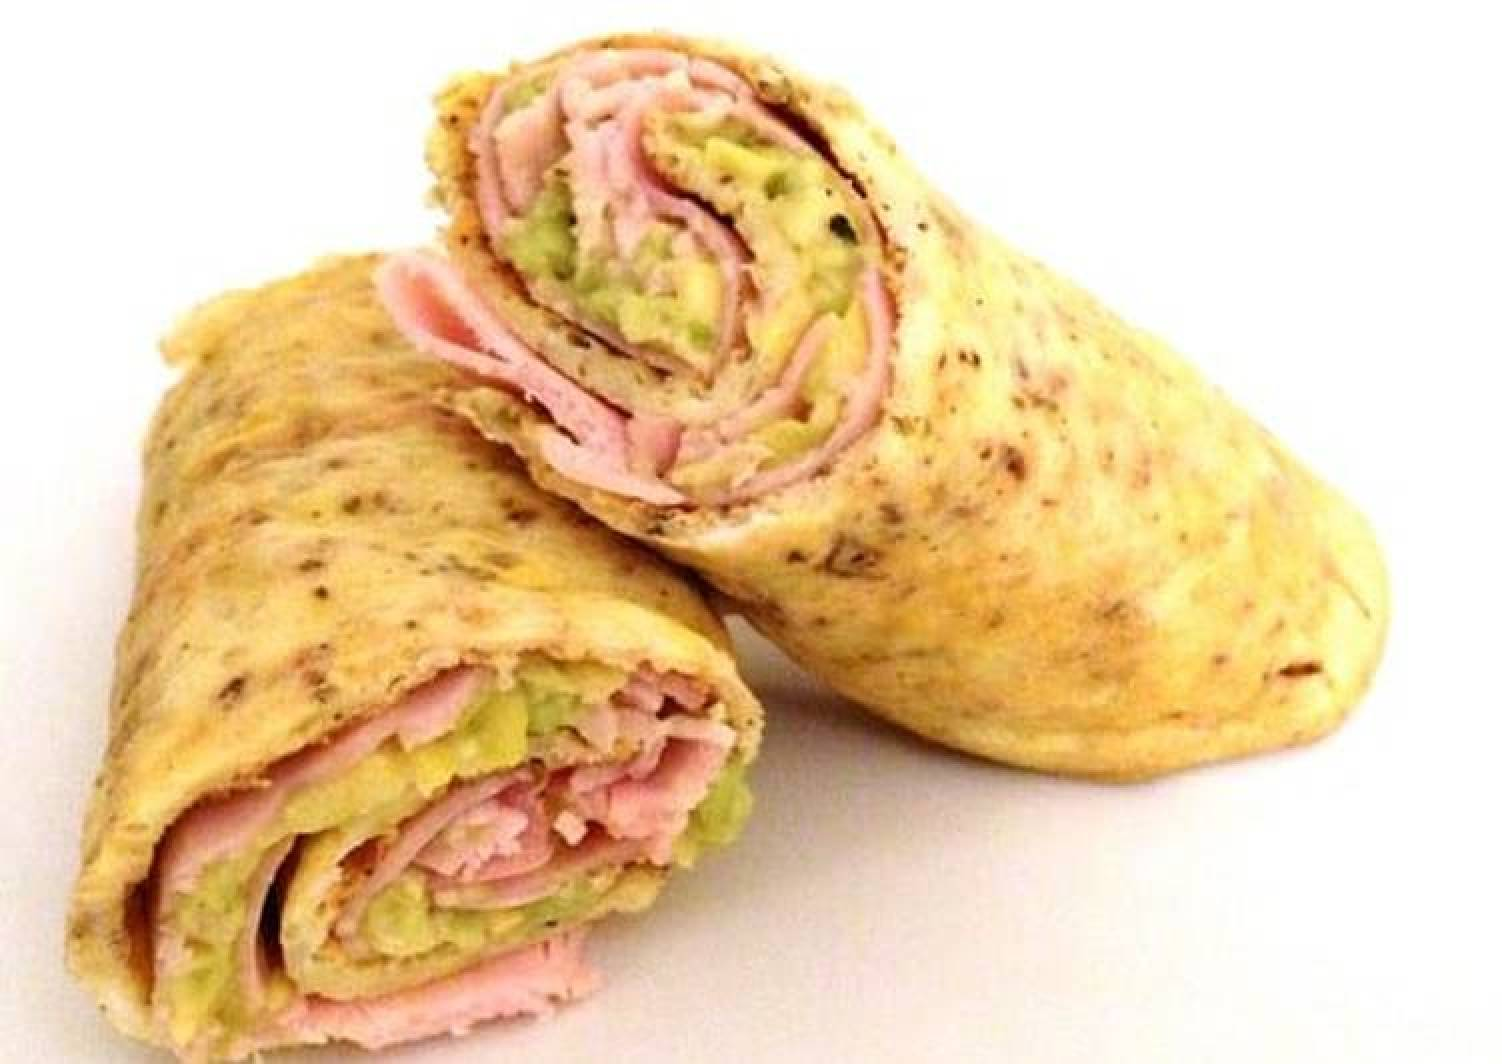 Egg and Proscuitto Wrap with Avocado